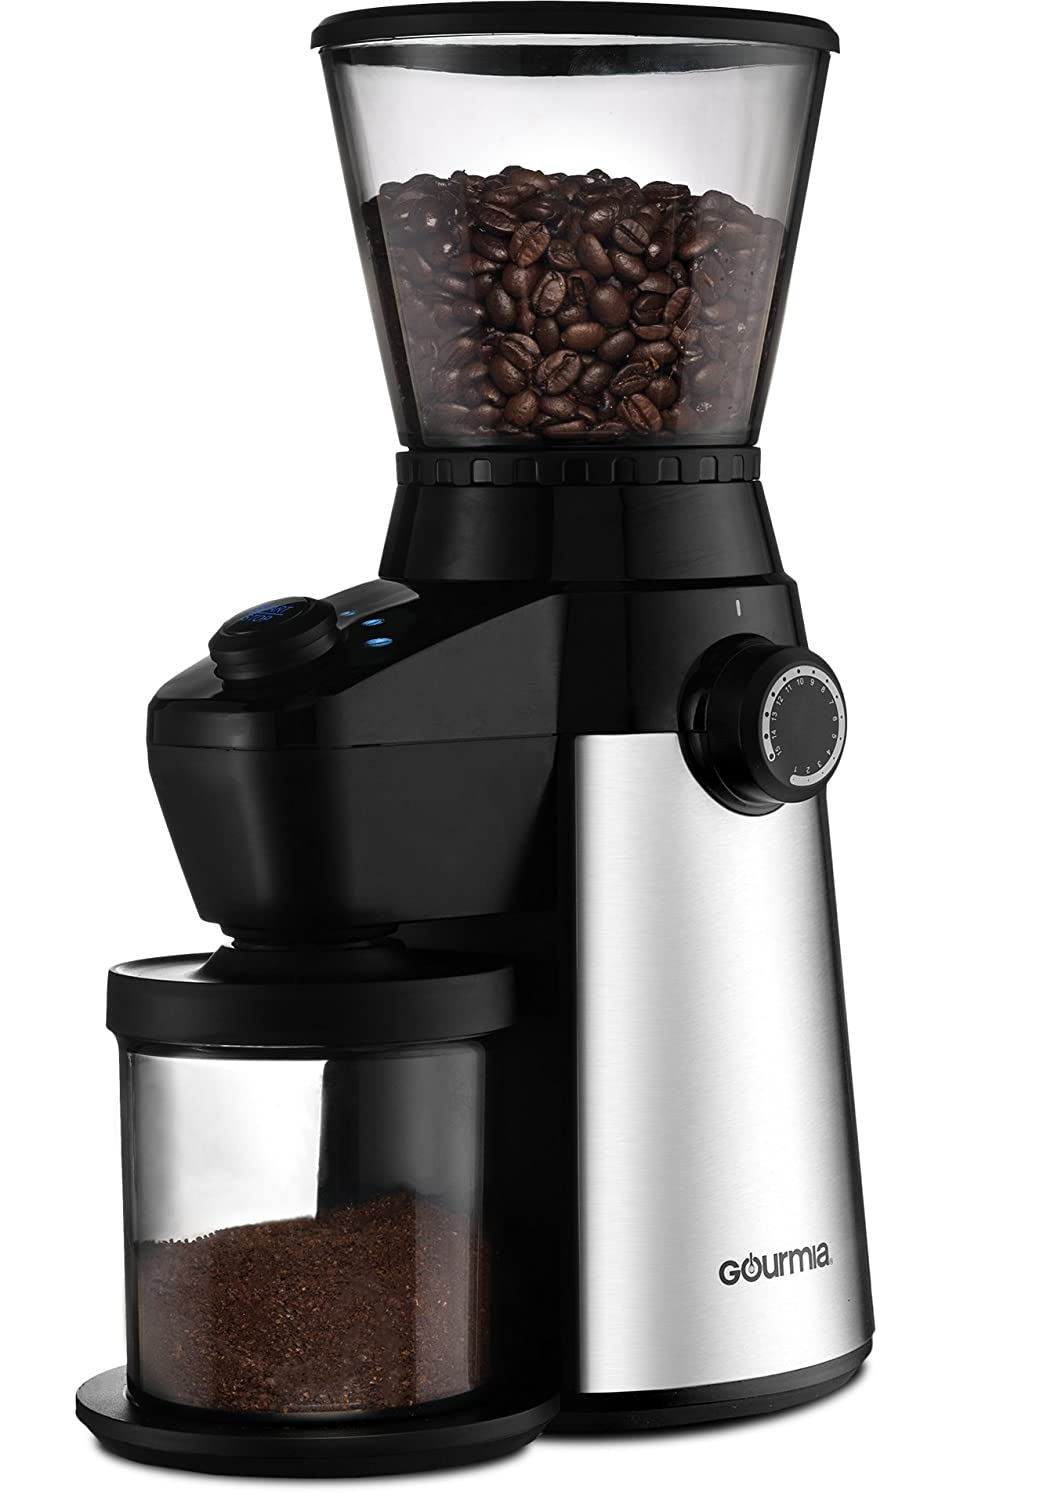 Gourmia GCM4850 Grind and Brew Coffee Maker with Built-In Grinder